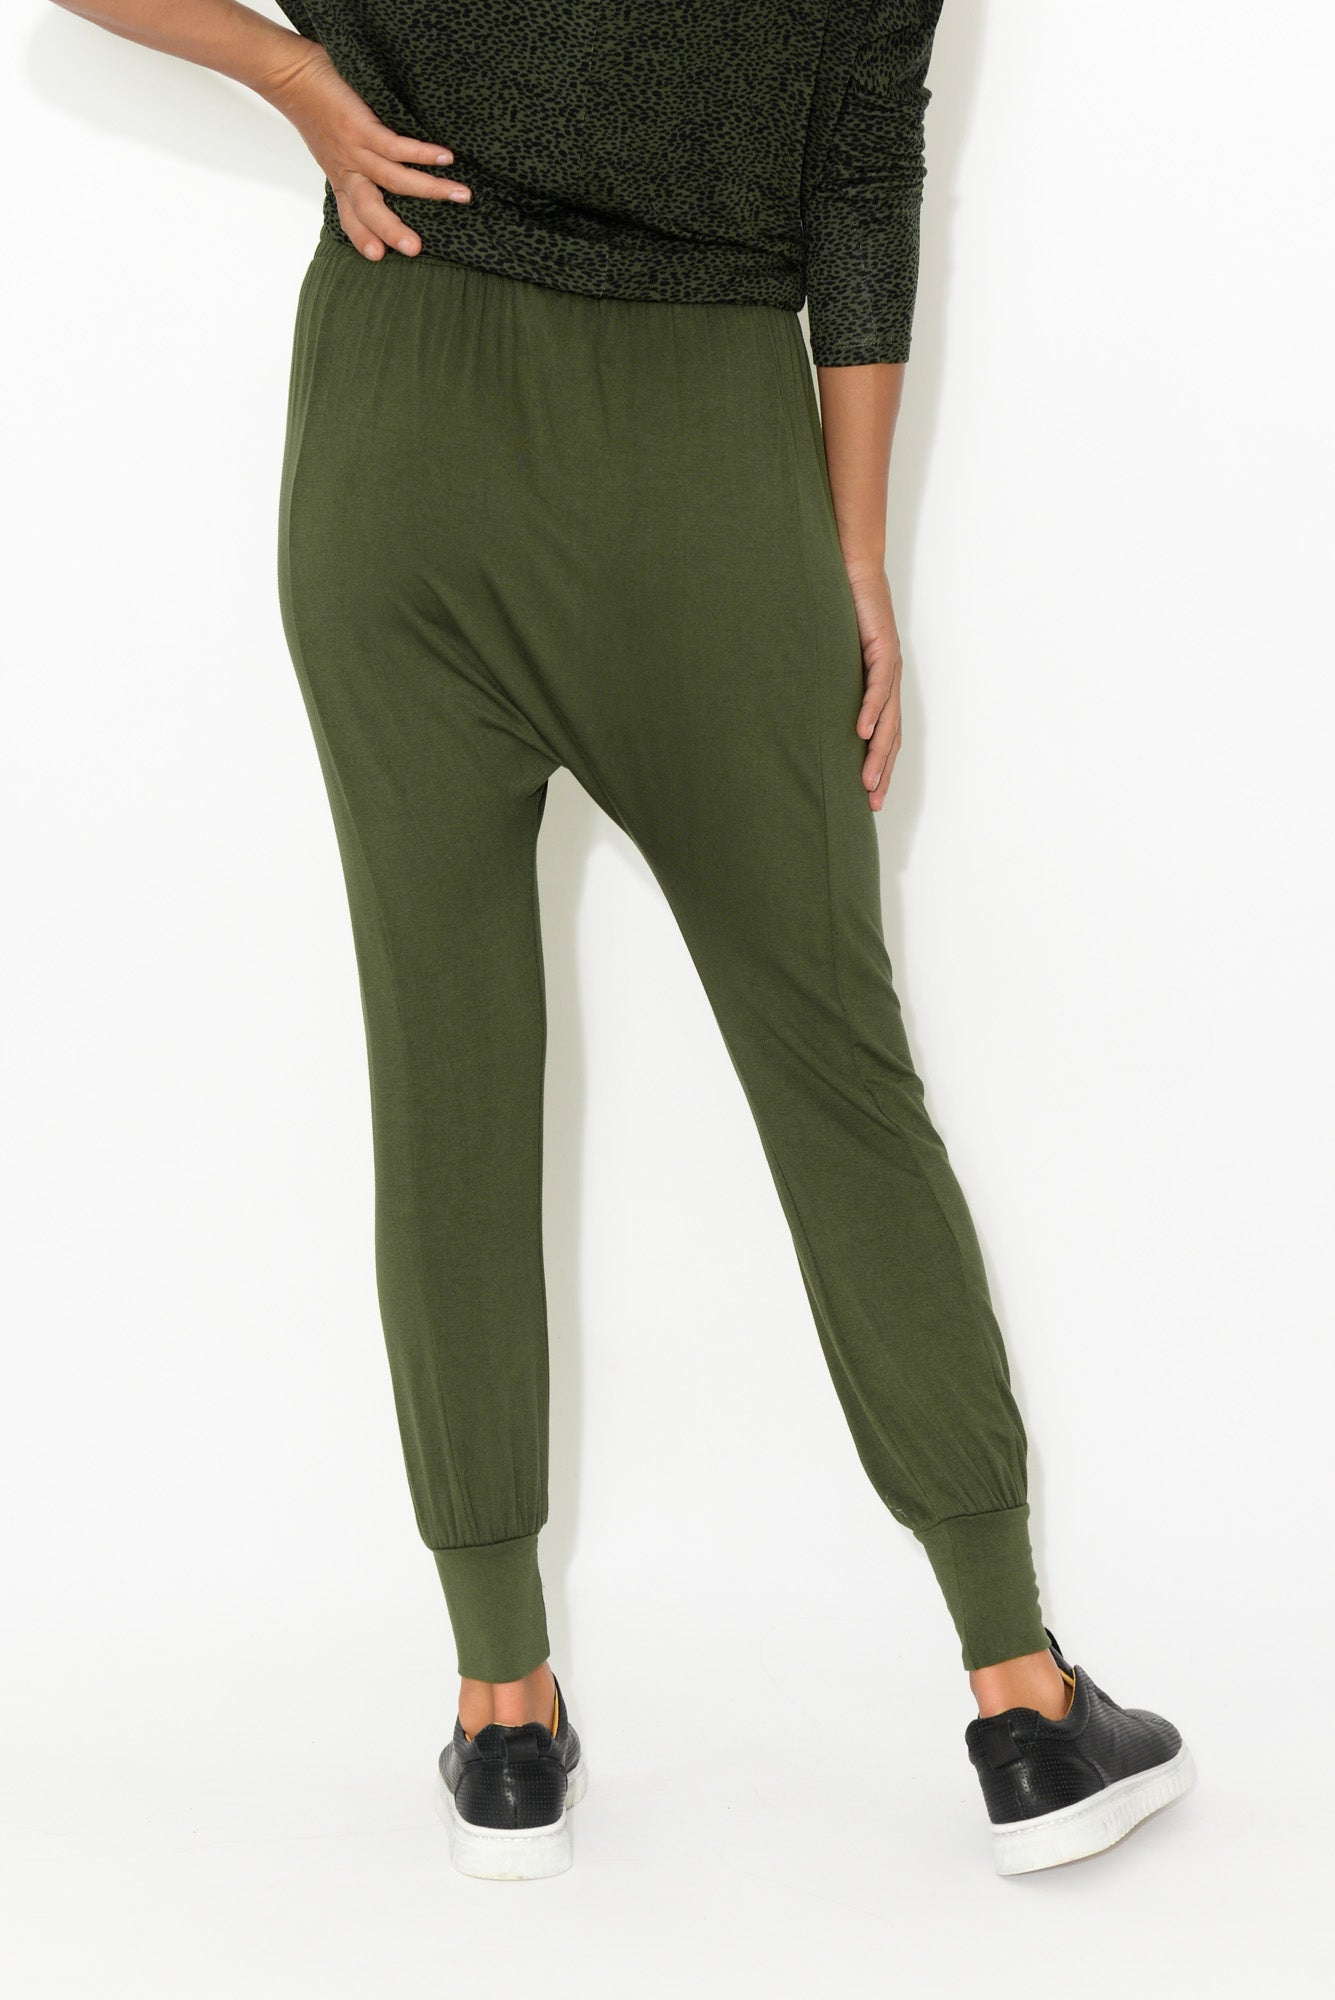 Barcelona Olive Drop Crotch Pant